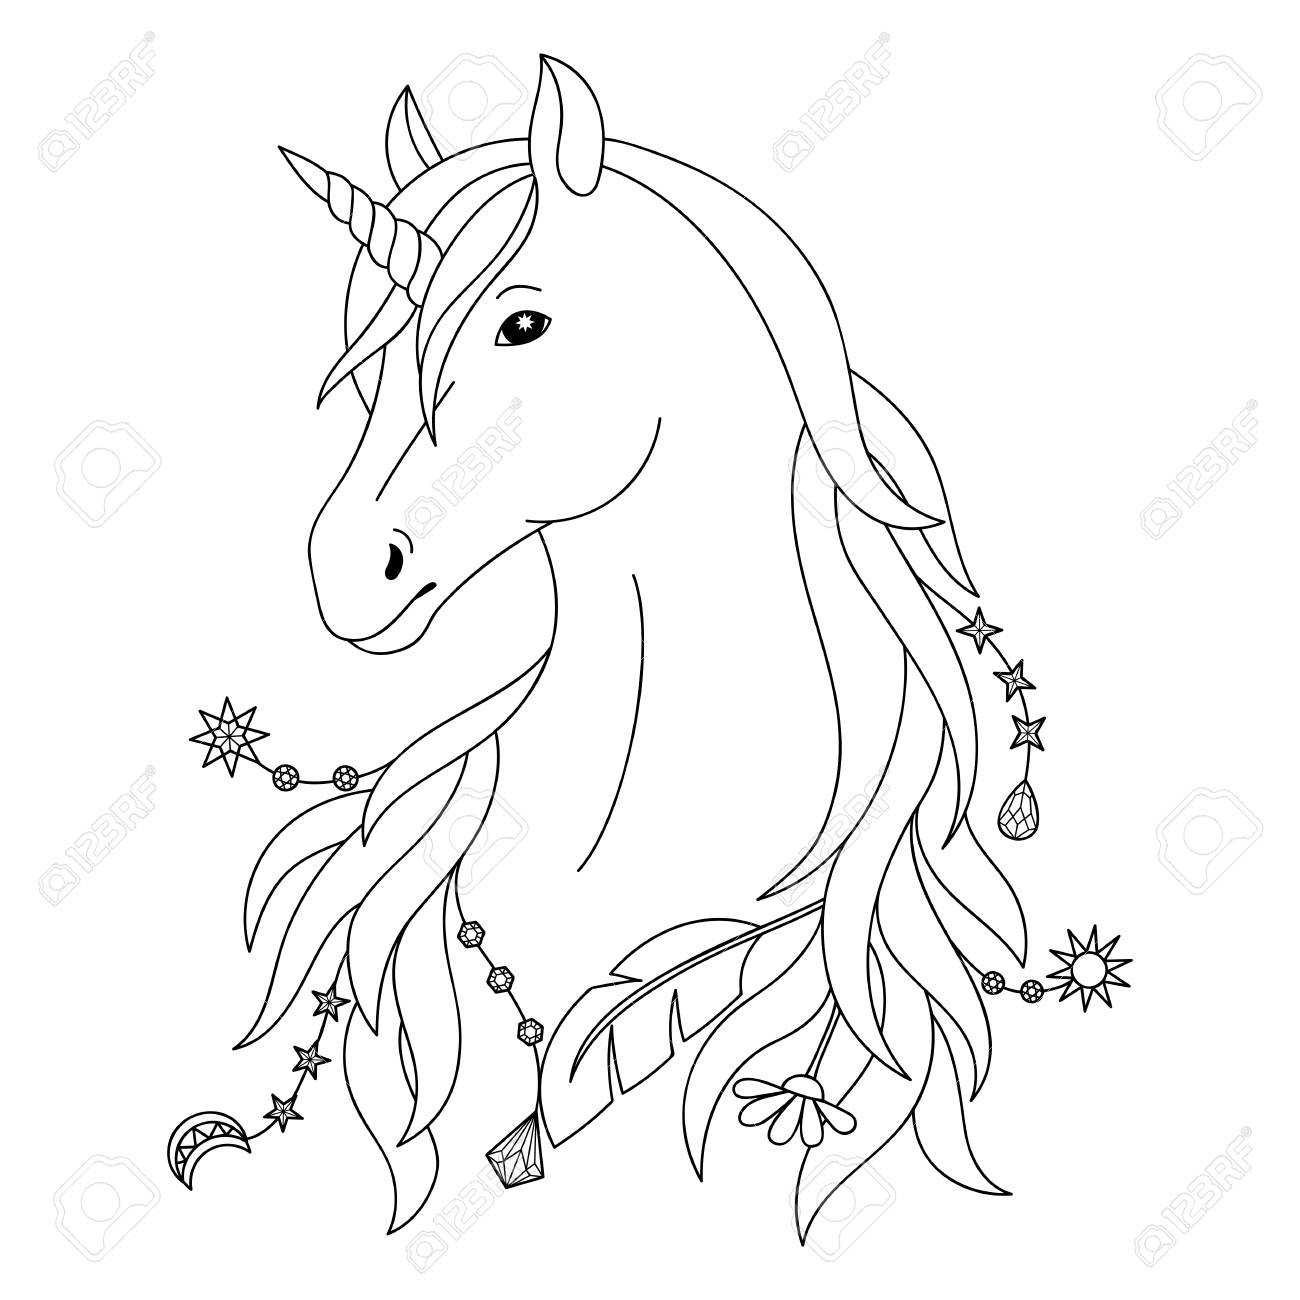 Unicorn black and white coloring page stock vector 89021892